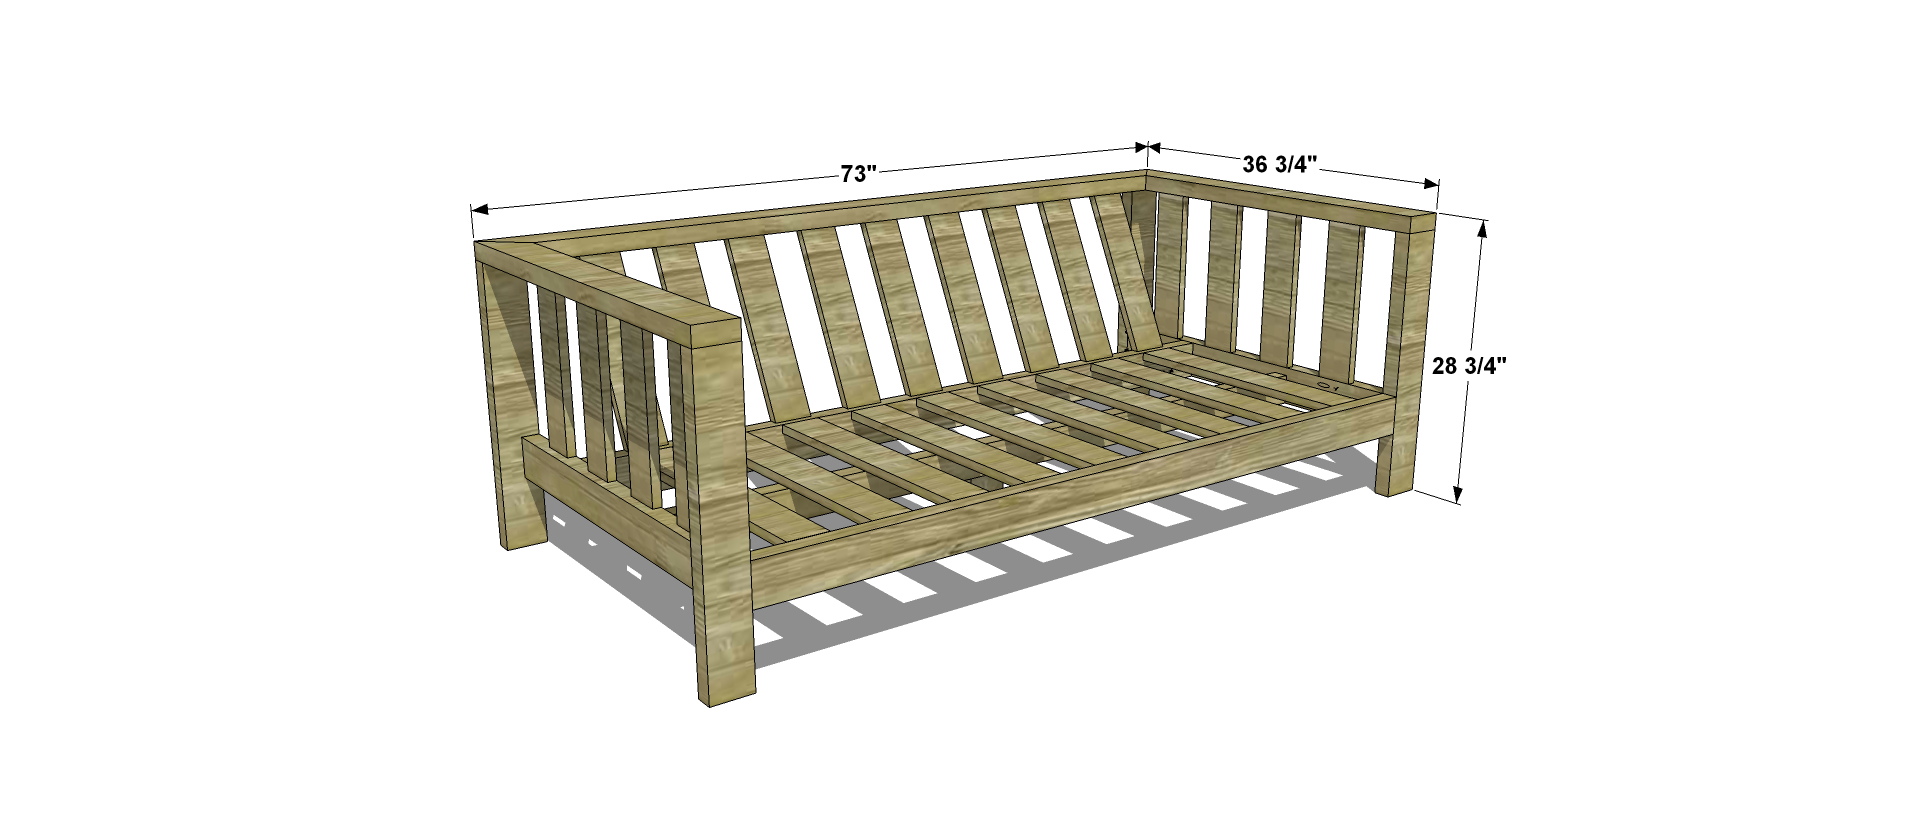 Dimensions for free diy furniture plans how to build an for Outdoor sectional sofa dimensions